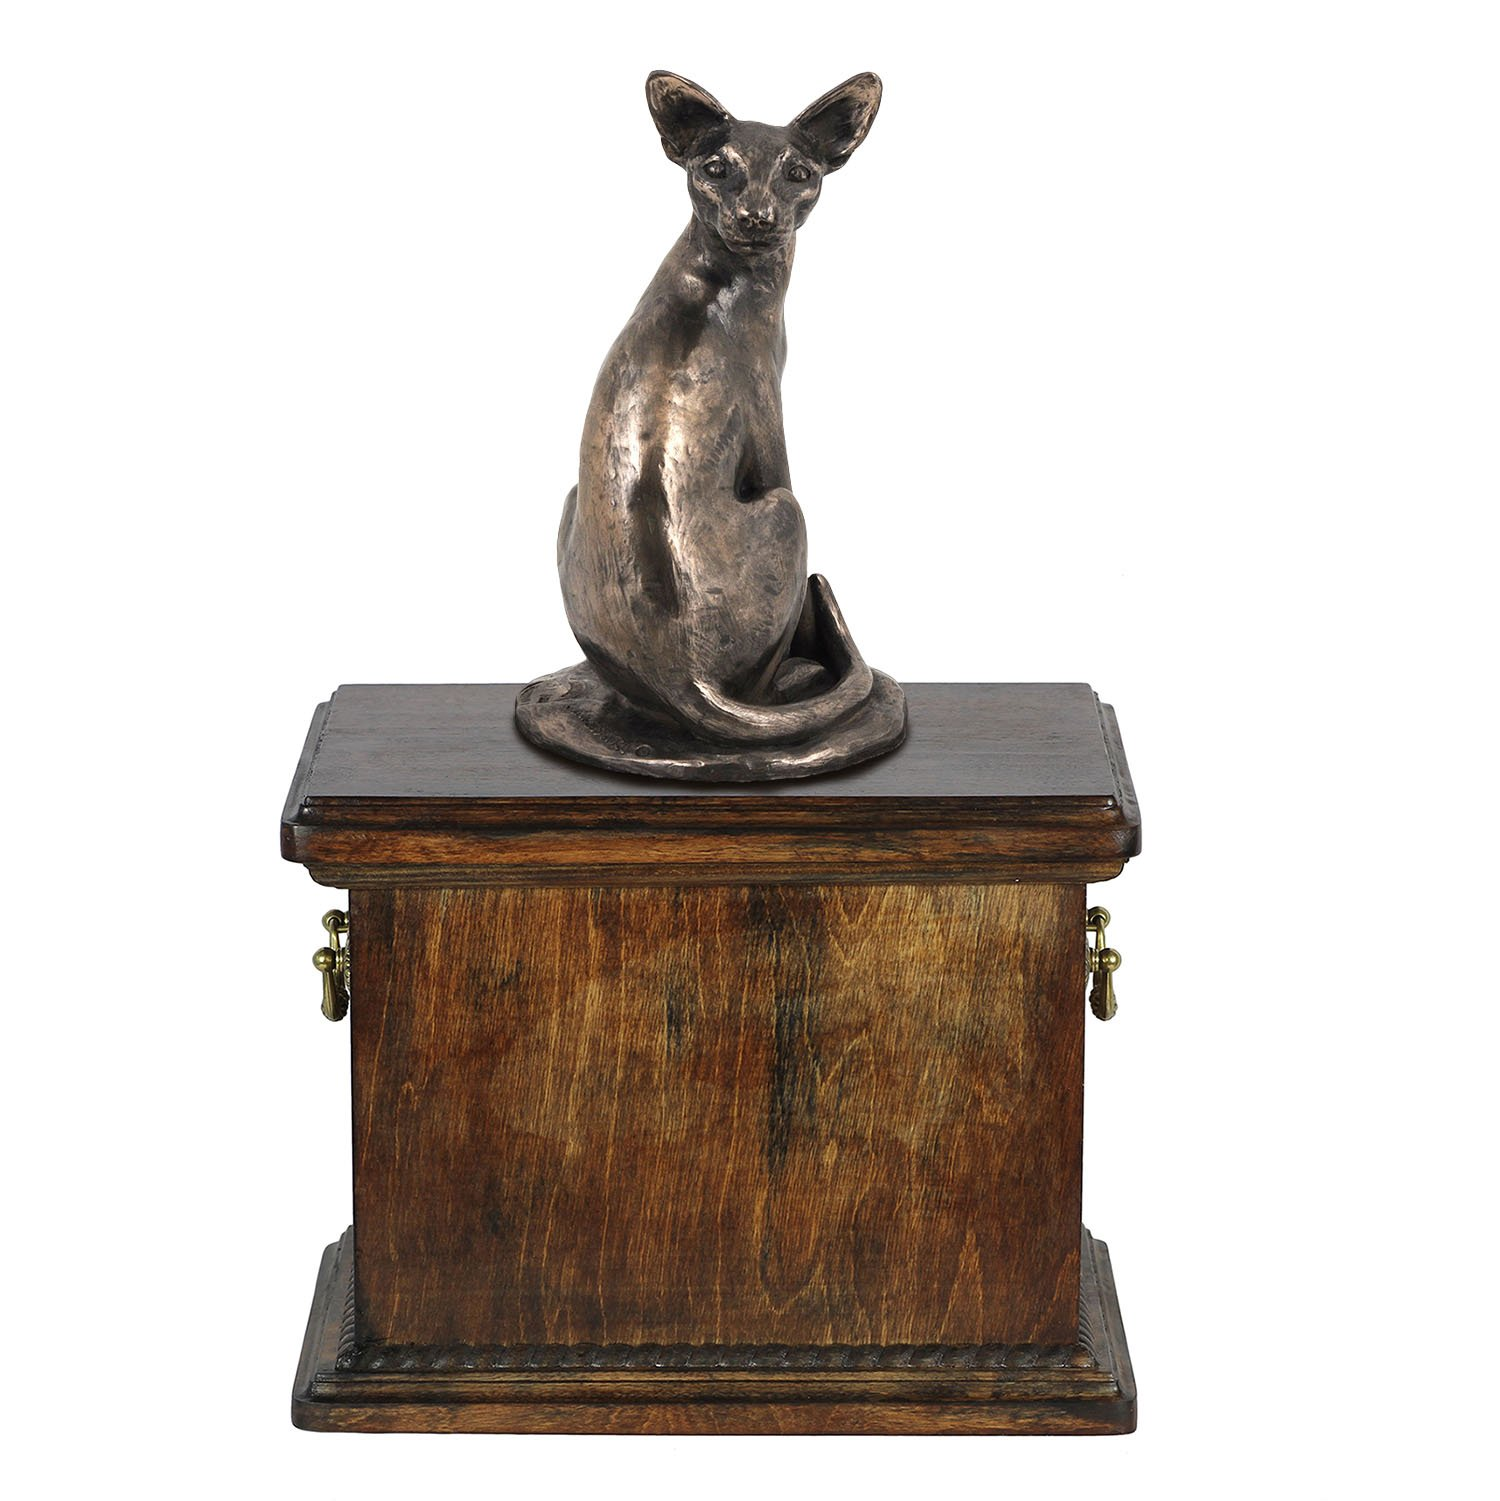 Egyptian Cat, memorial, urn for cat's ashes, with a cat statue, ArtDog